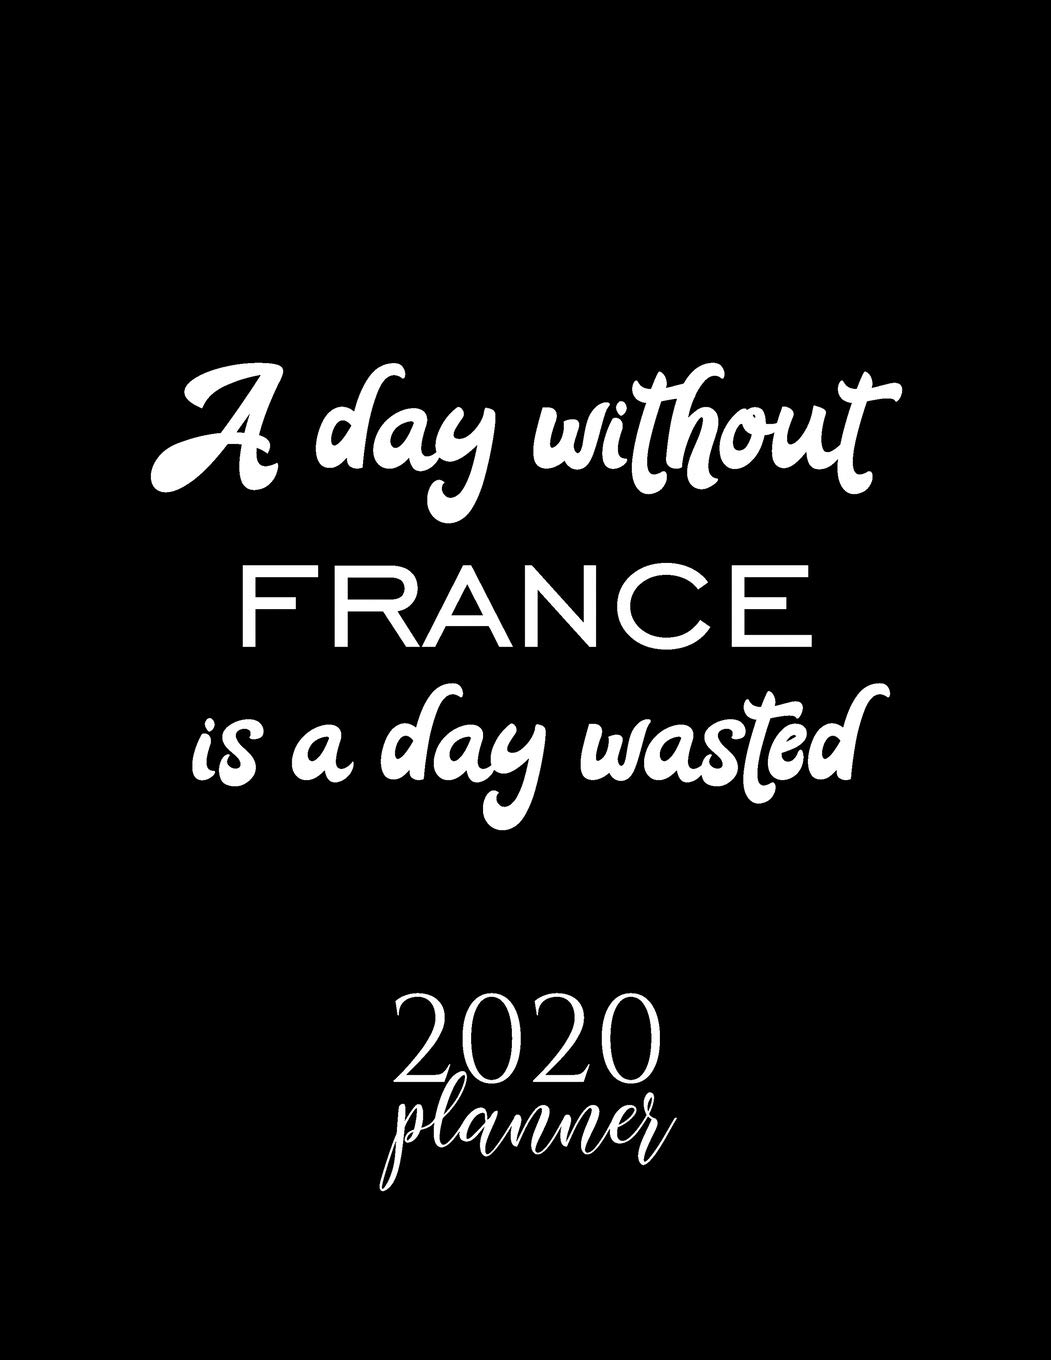 A Day Without France Is A Day Wasted 2020 Planner Nice 2020 Calendar For France Fan Christmas Gift Idea France Theme France Lover Journal For 2020 120 Pages 8 5x11